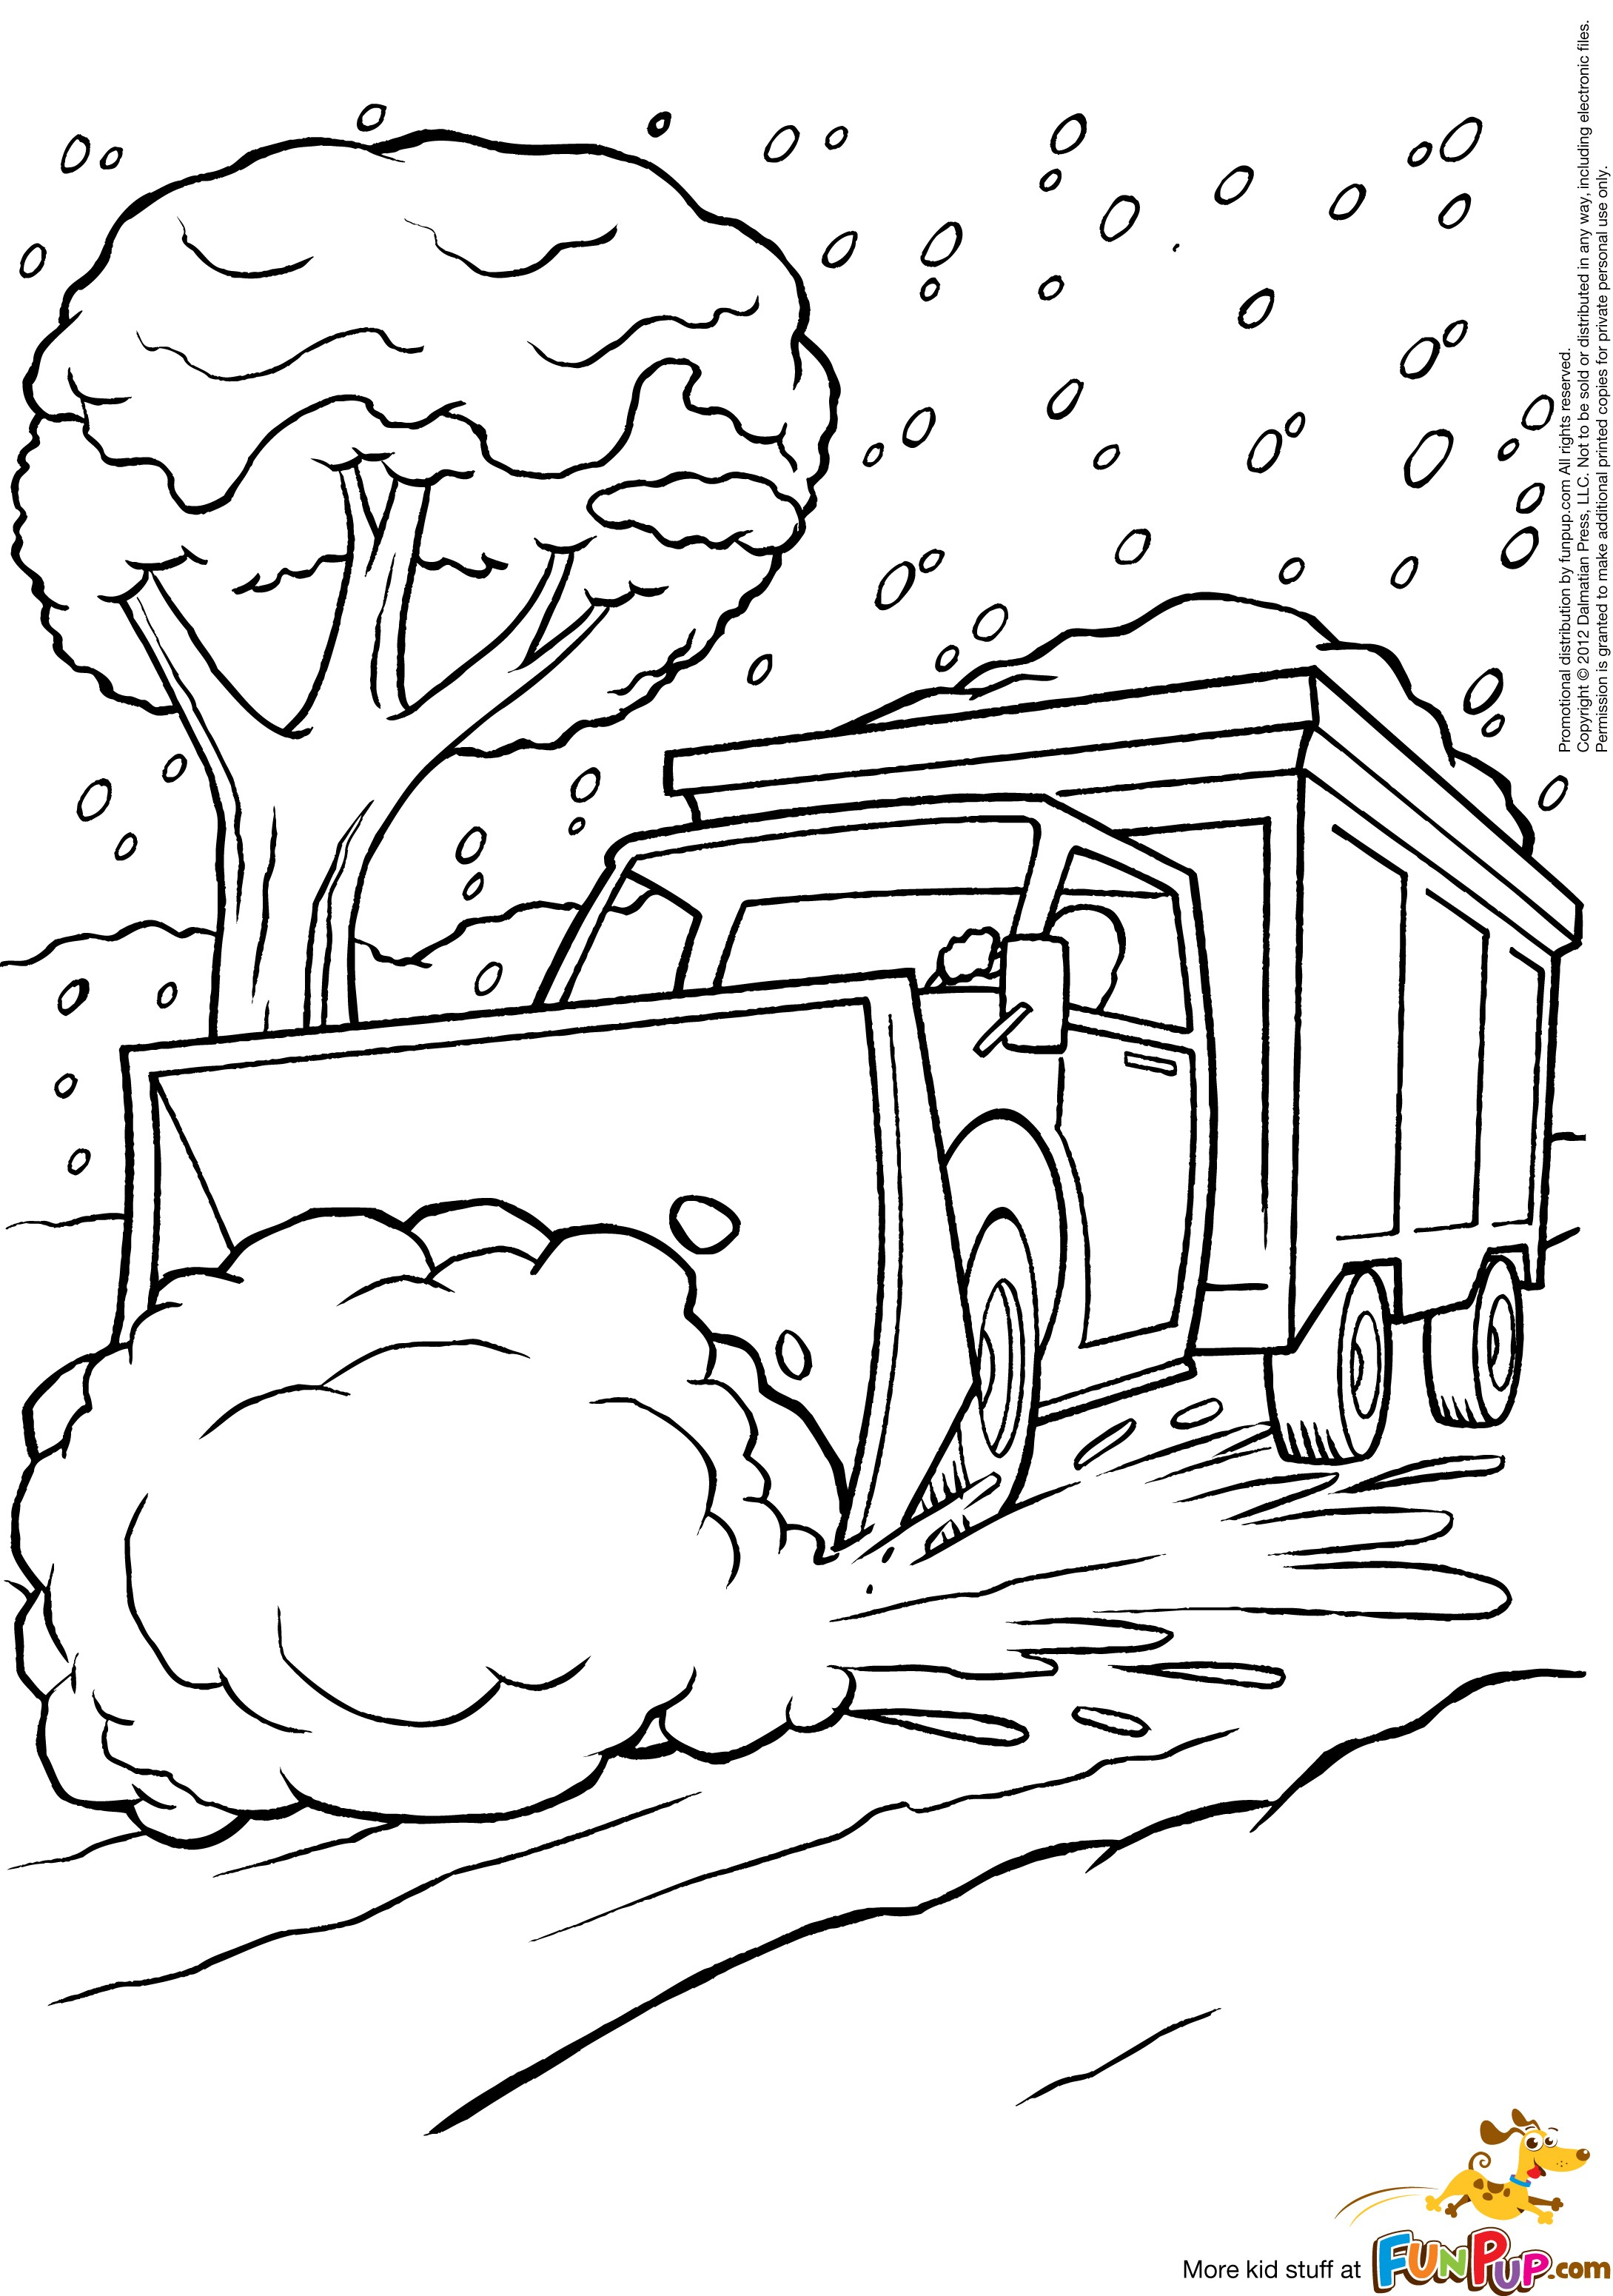 Clip Art Snow Plow Coloring Pages snow plow coloring pages eassume com az pages